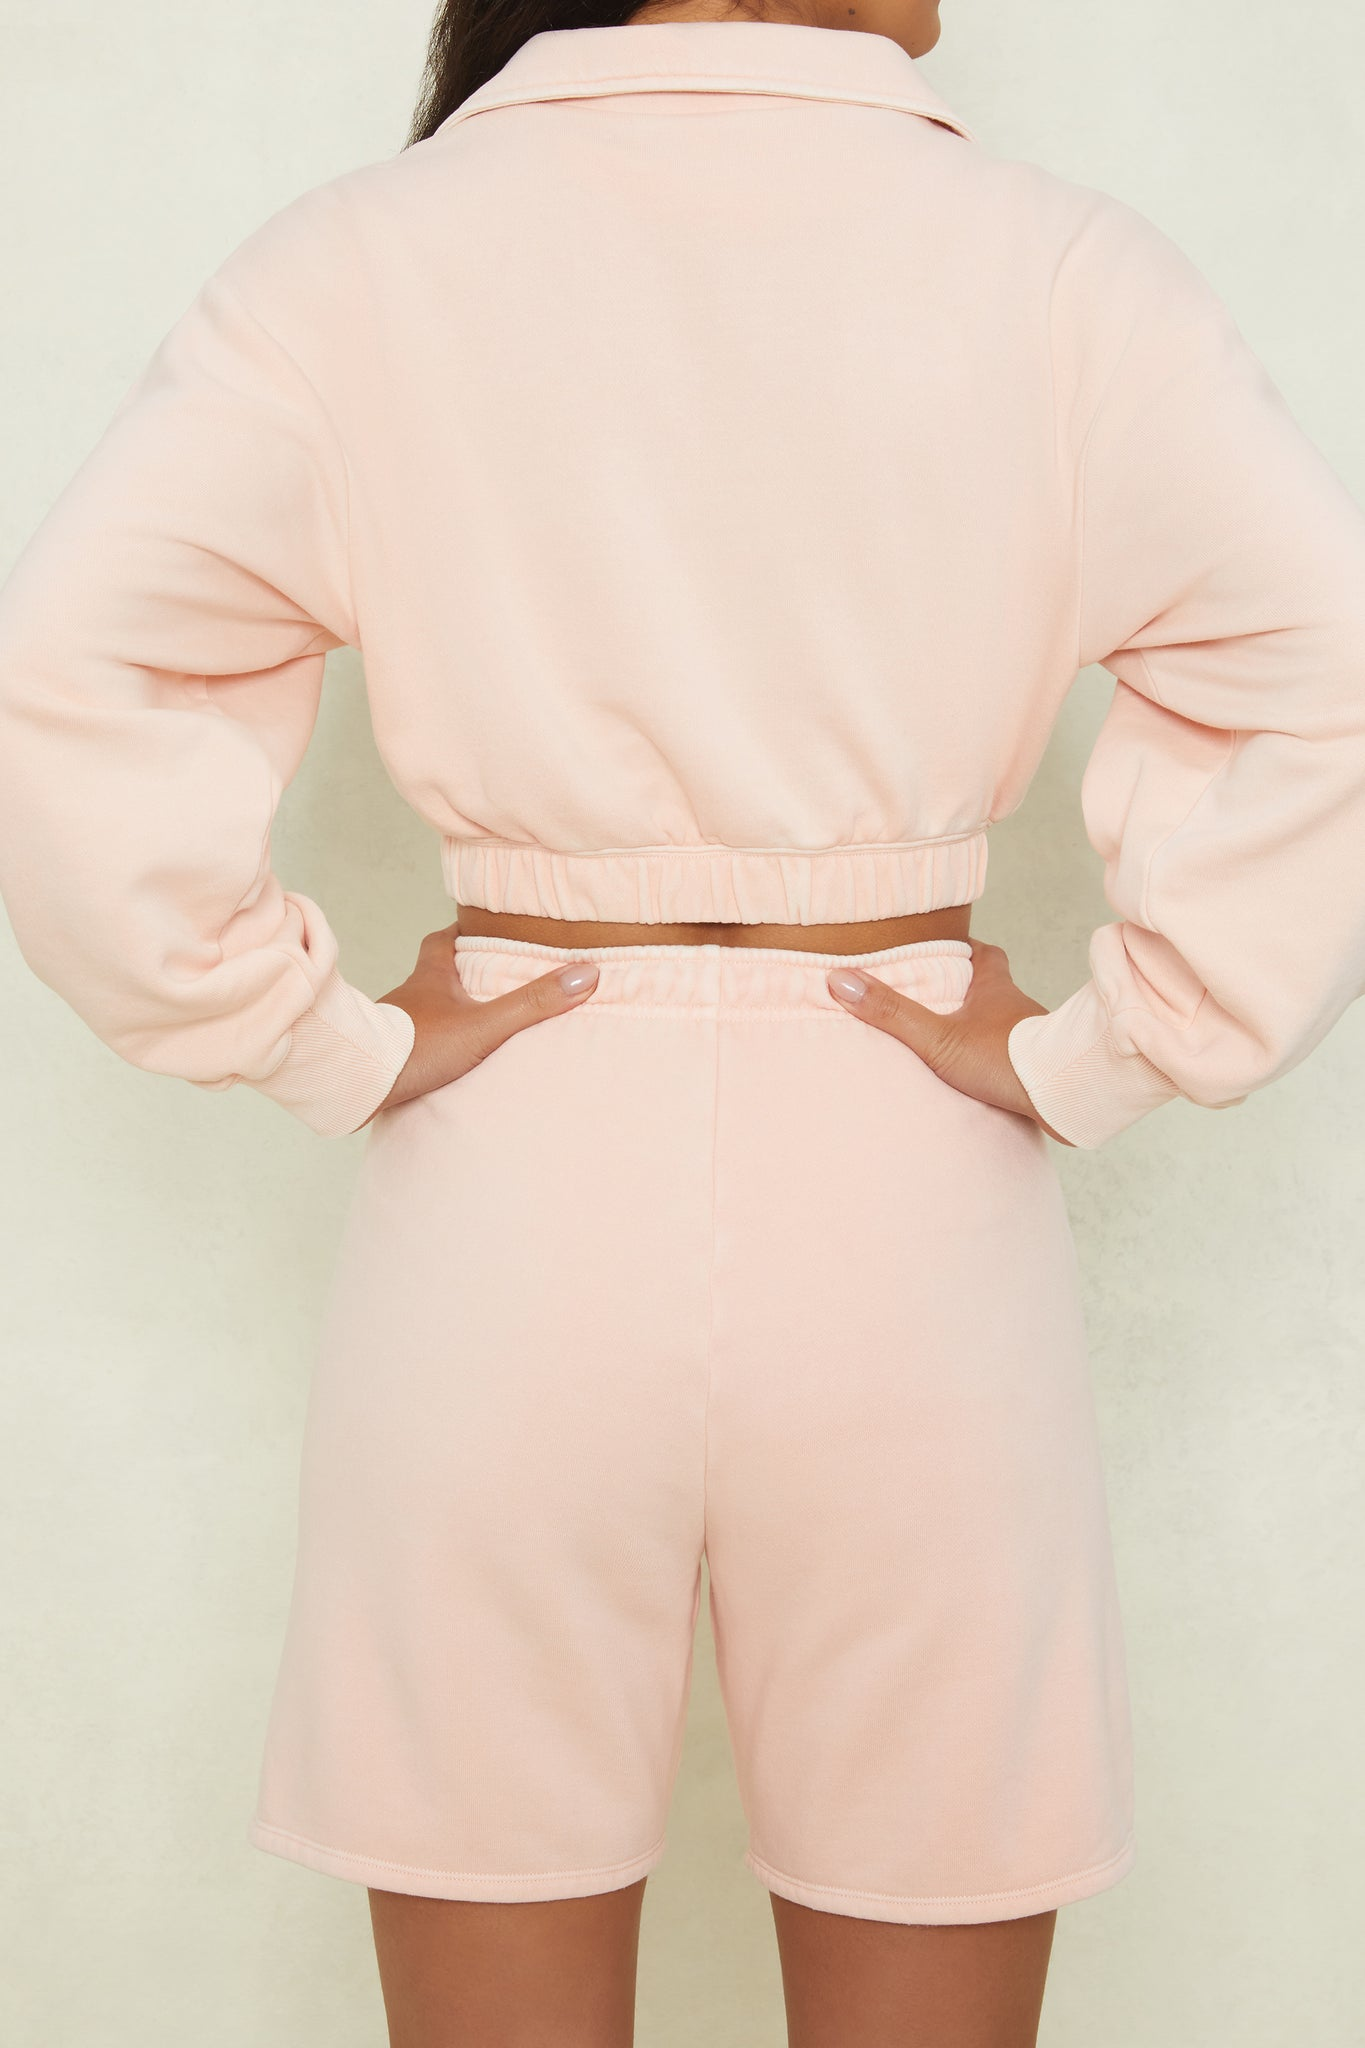 Runner Up - Sweatshirt in Blush